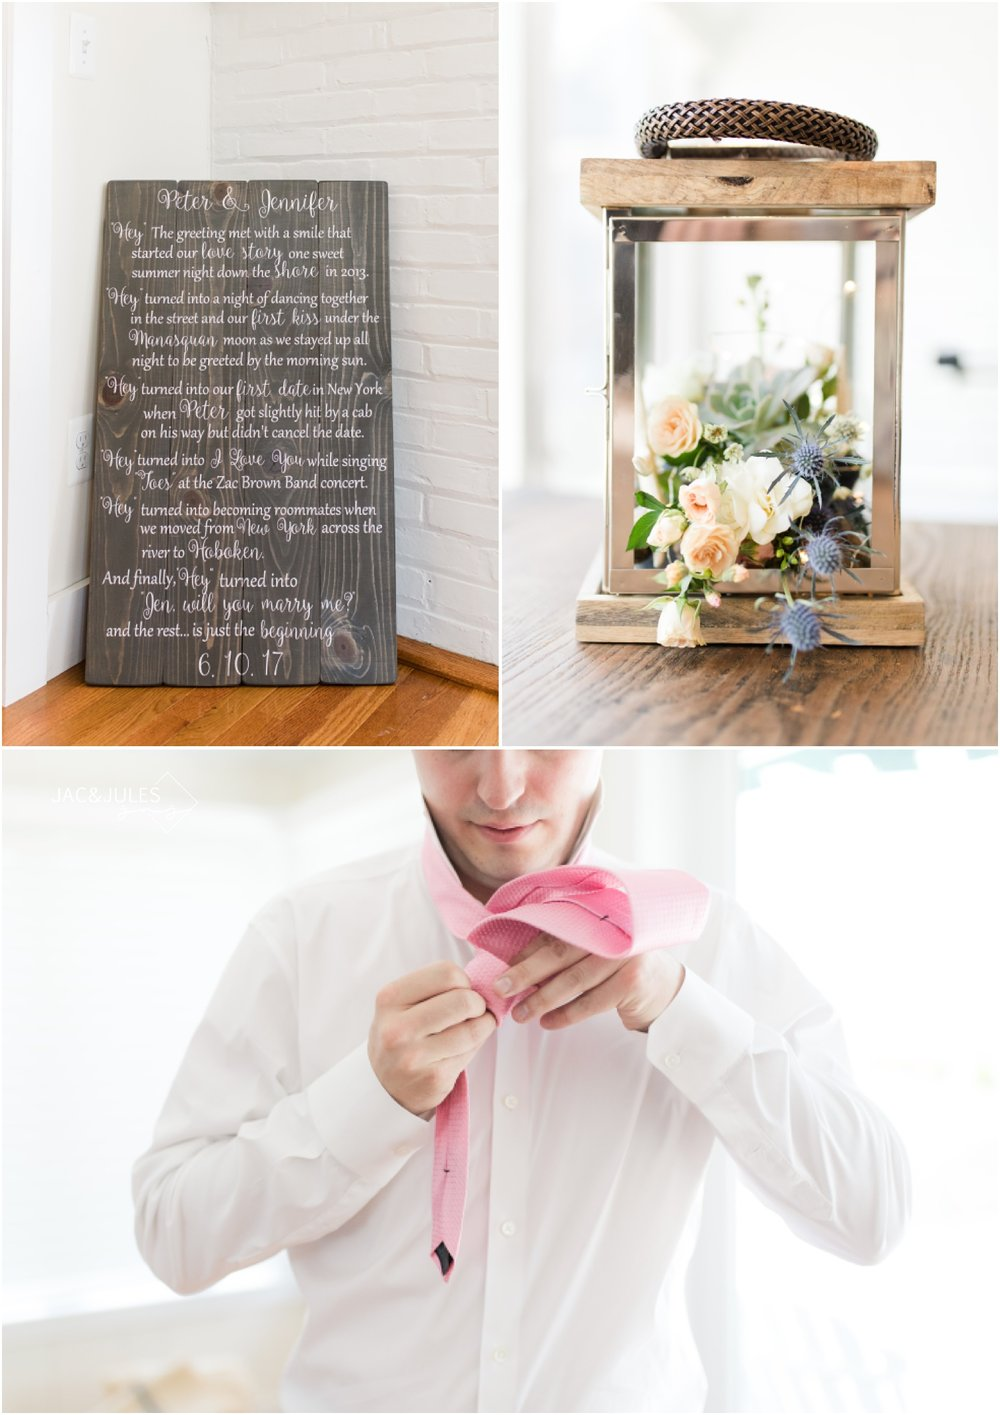 A poem about the bride and groom and table decor with florals by Faye and Renee.